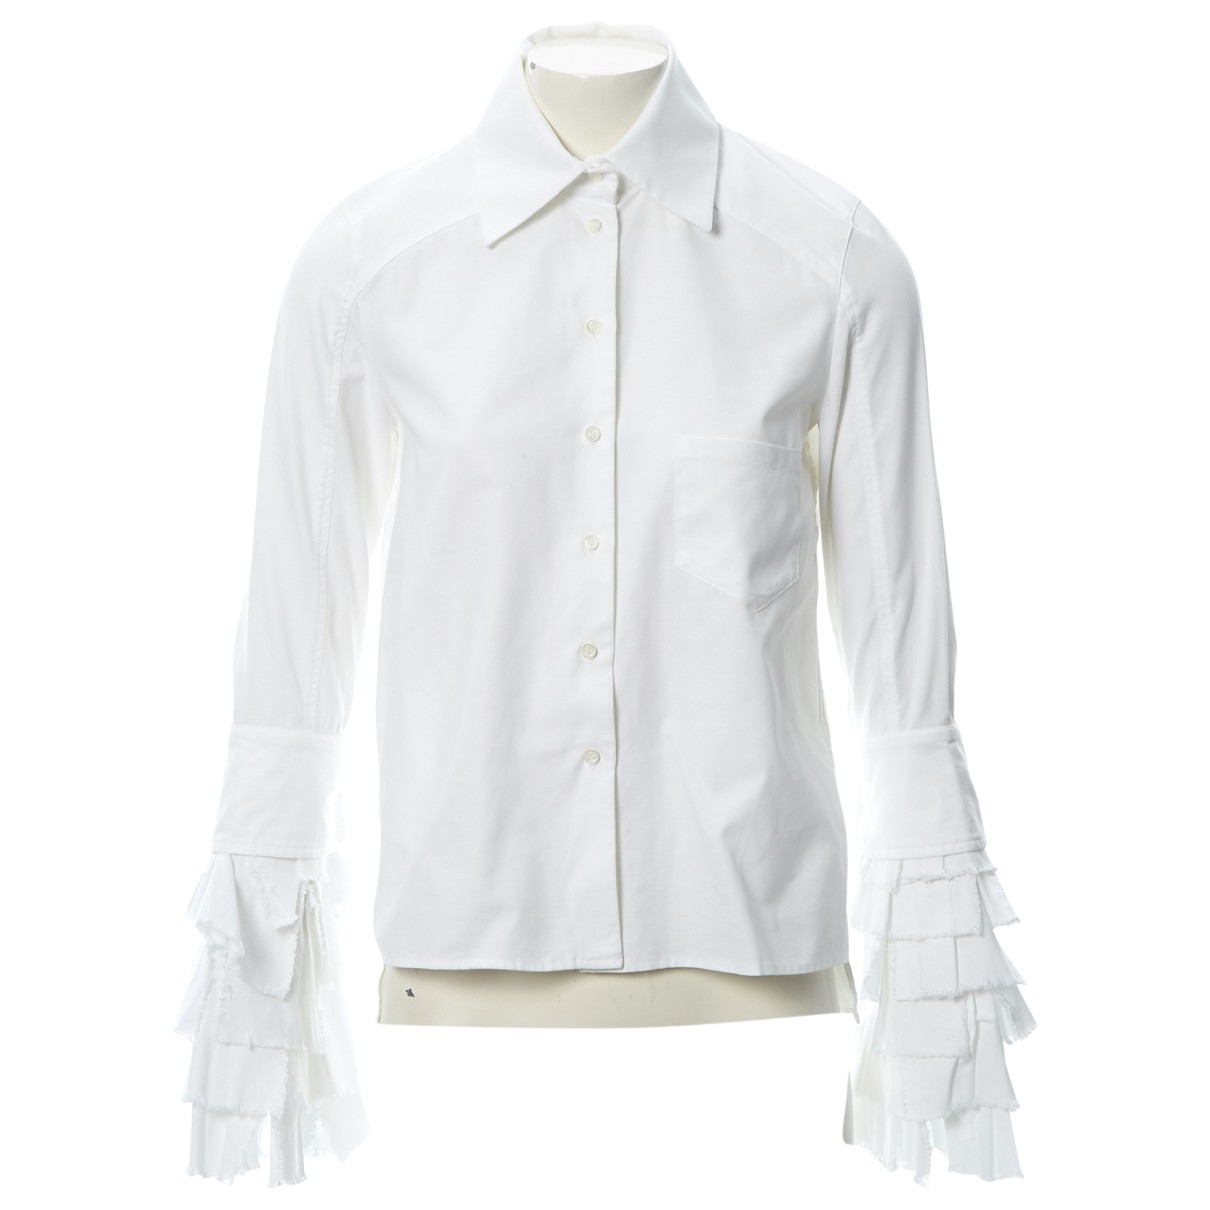 Givenchy \N White Cotton  top for Women 38 FR